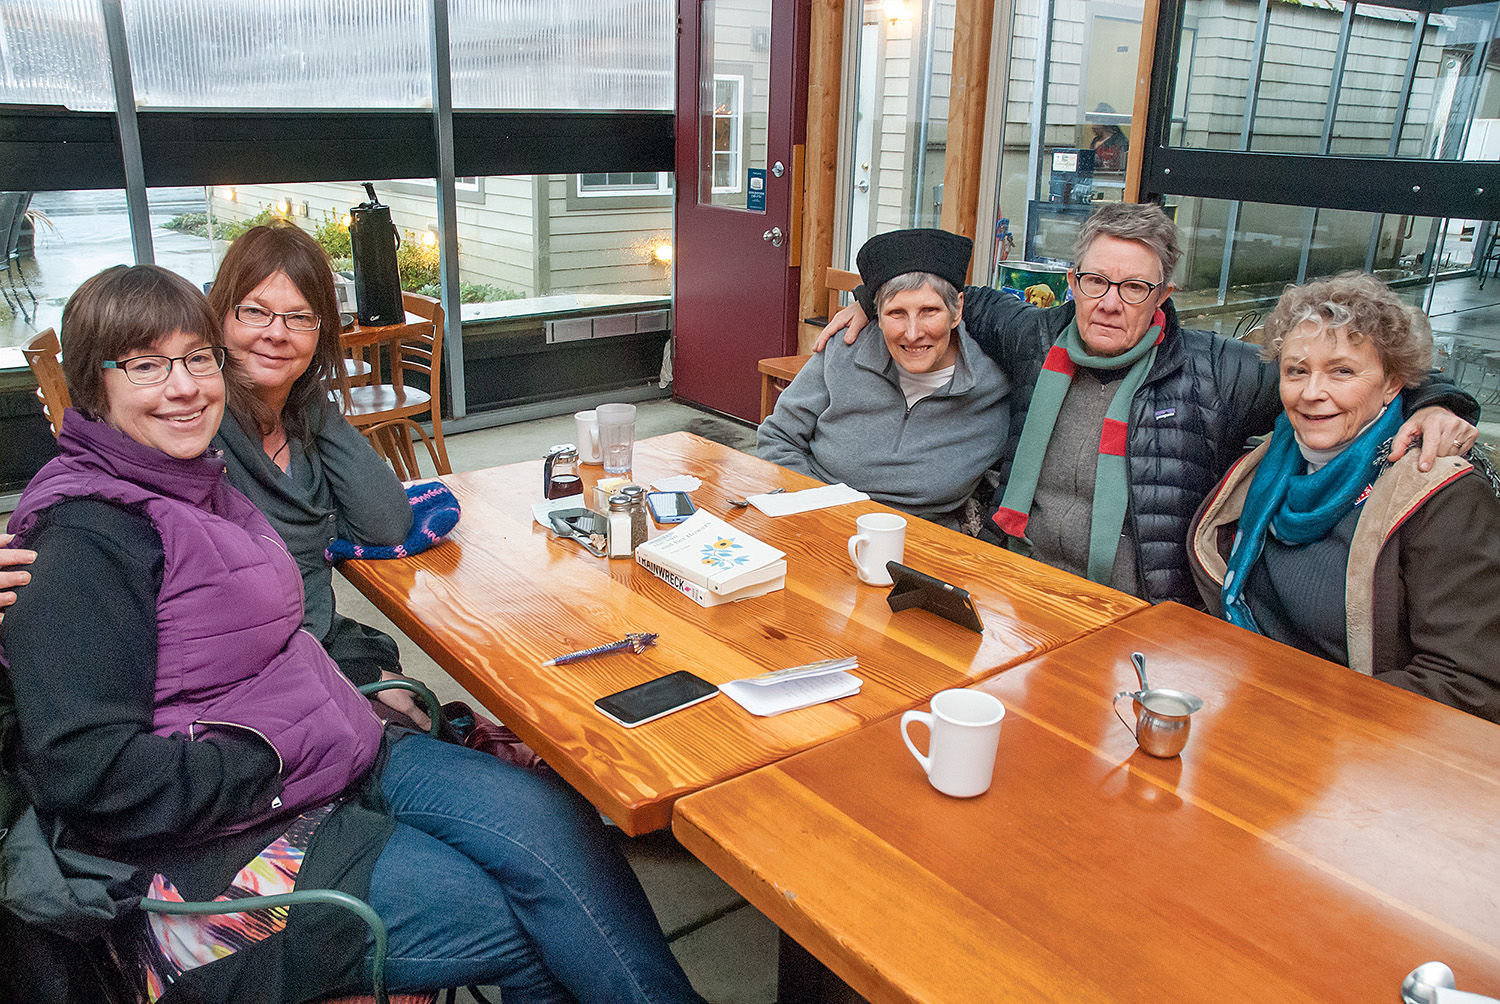 The Nest Egg Project members (from left) Celeste Bennett, Juliet Parfrey, Trish Walat, Lauri Chambers and Linda Brewster meet at The Cup restaurant in Port Townsend. Photo by Chris Tucker